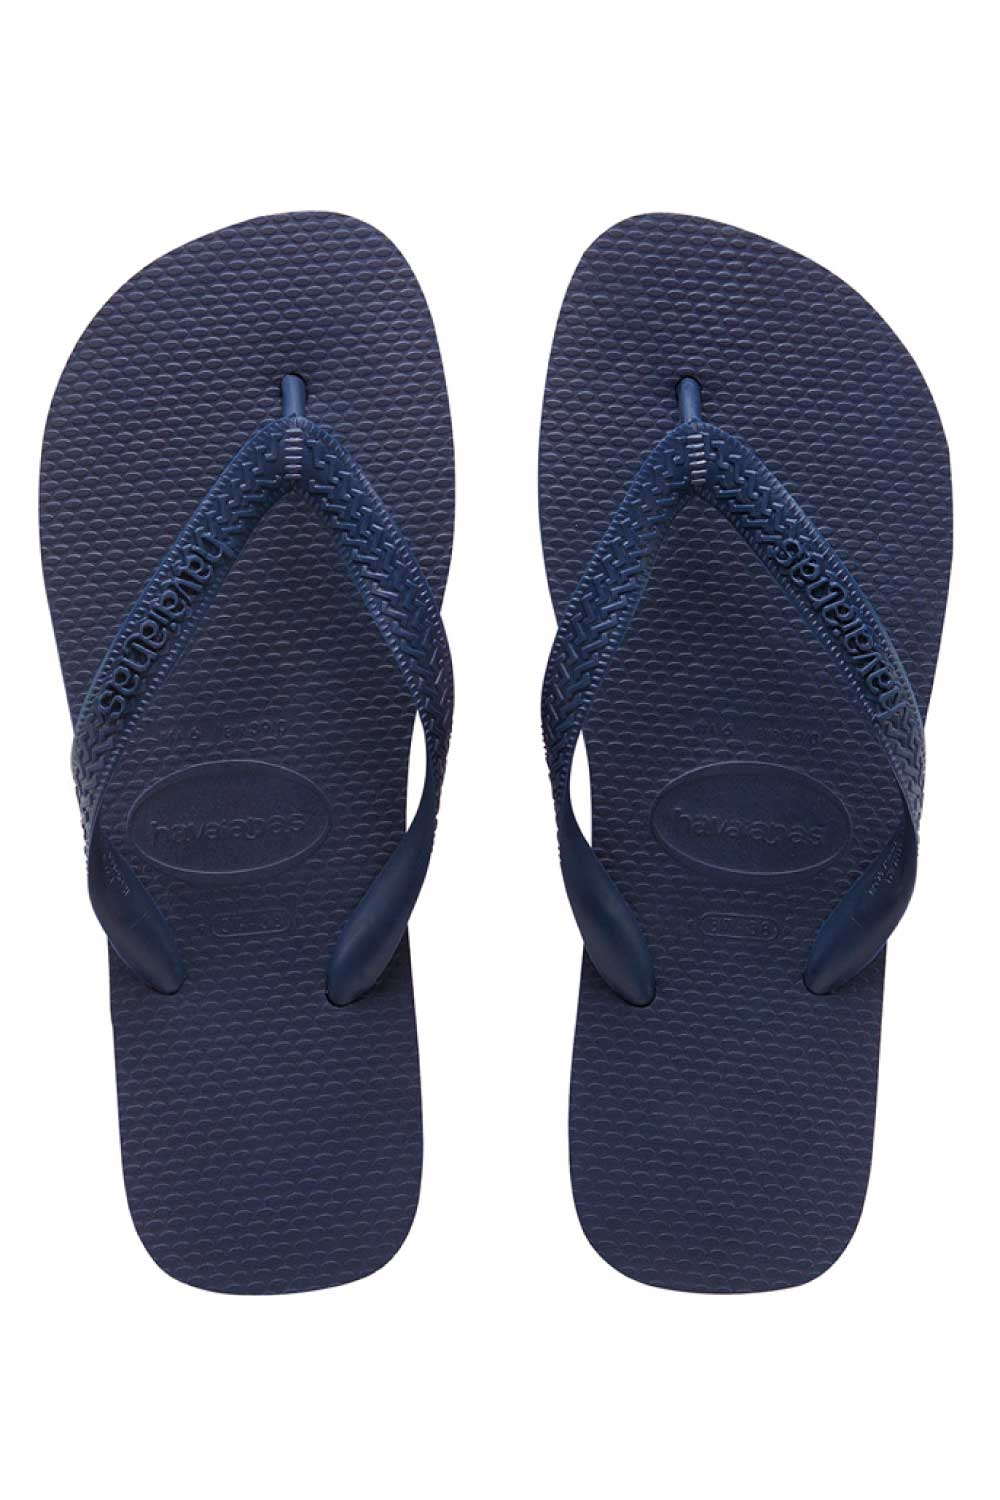 Havaianas Top NAVY Thongs